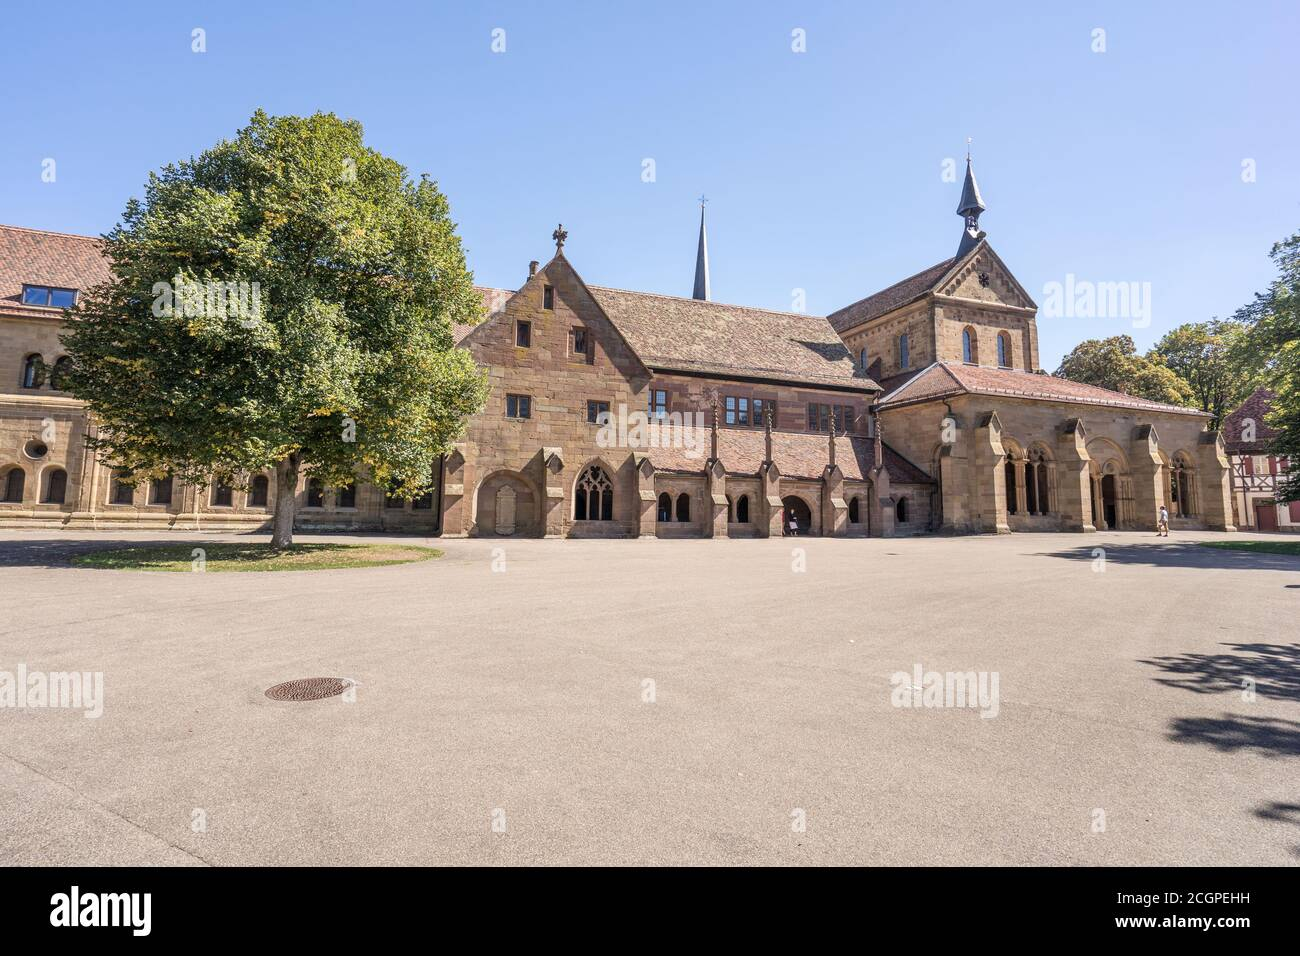 maulbronn monastery is a world heritage touristic atraction site in Germany Stock Photo